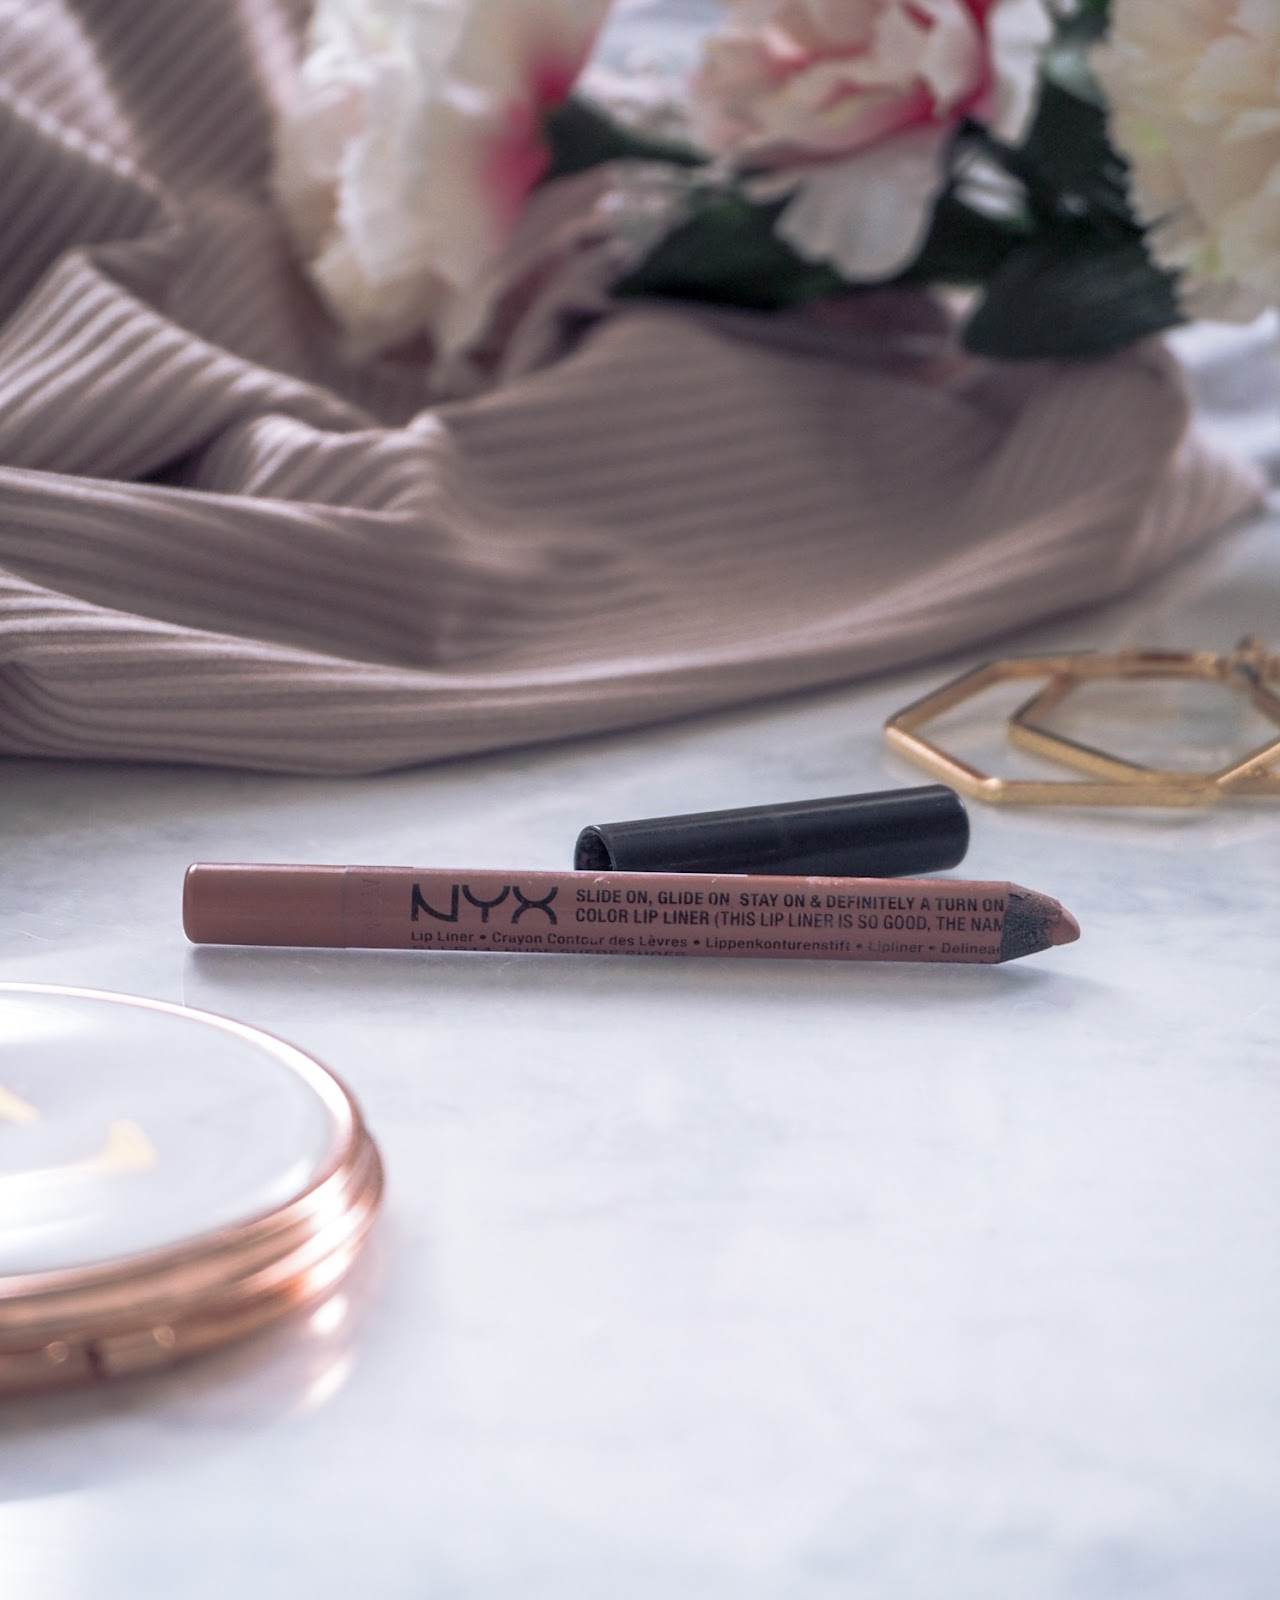 NYX Slide On Lip Liner Nude Suede Shoes